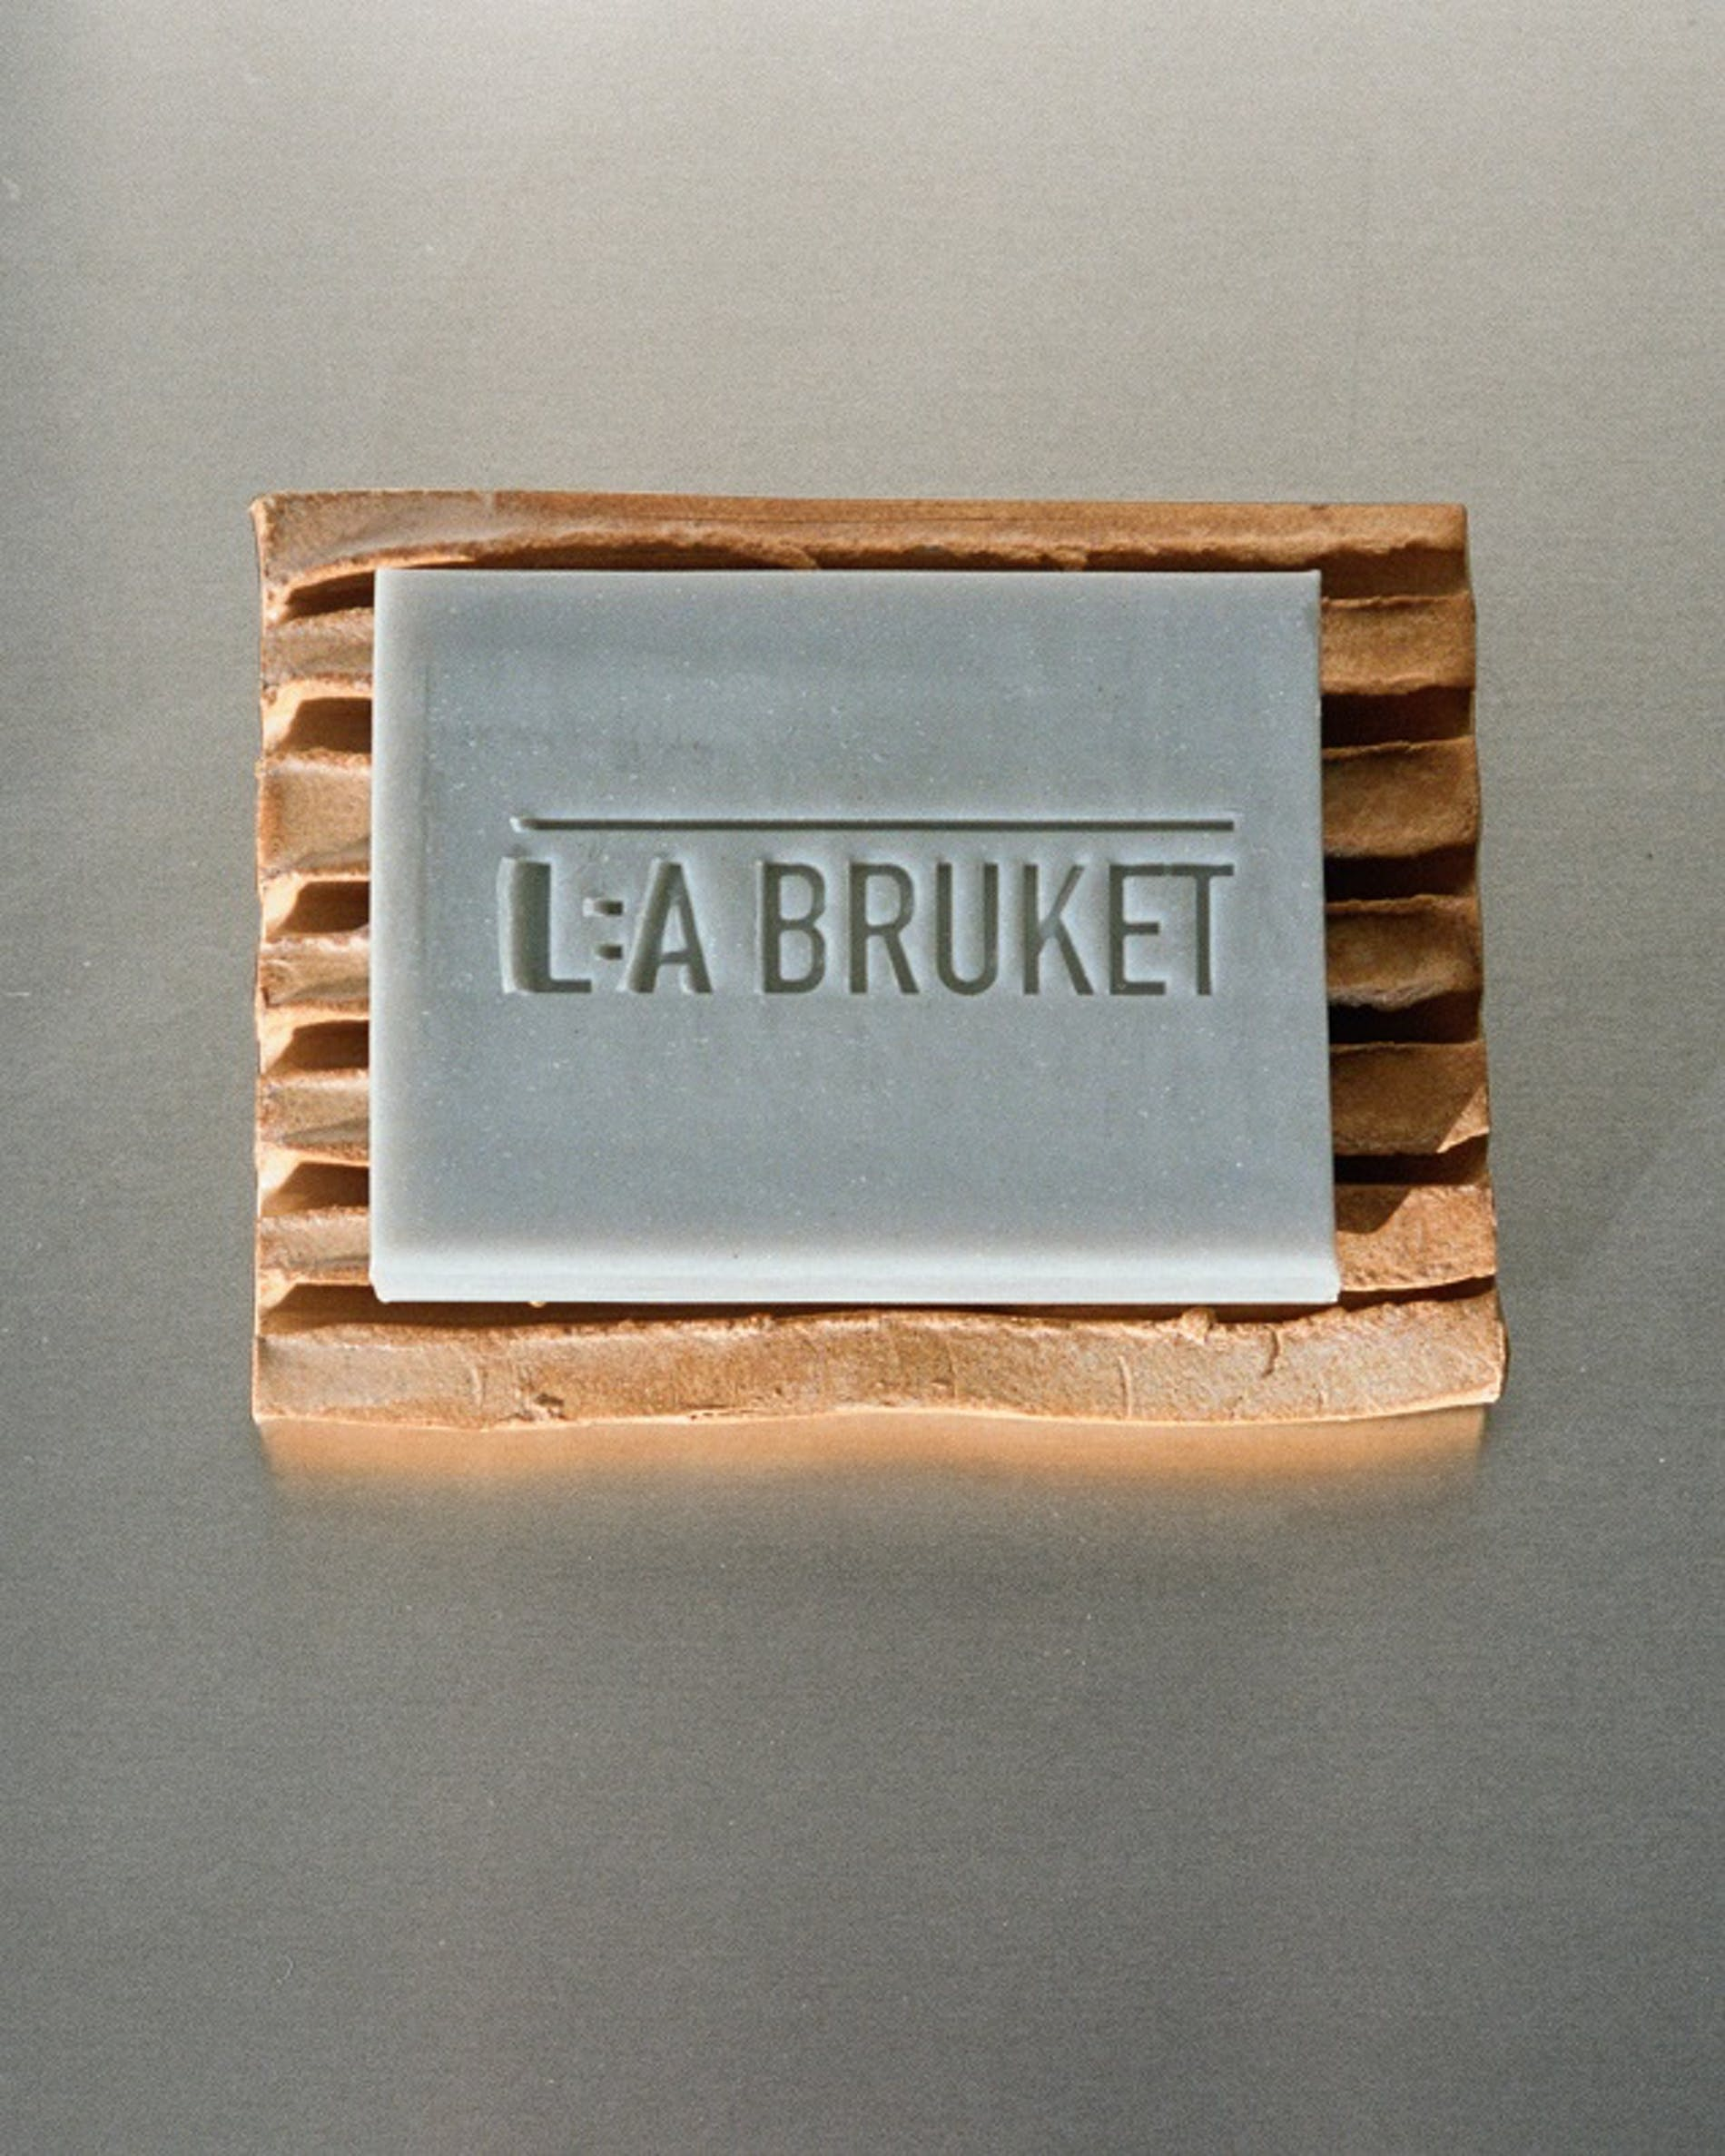 Hand-Made Ceramic Soap Dish (Limited edition)